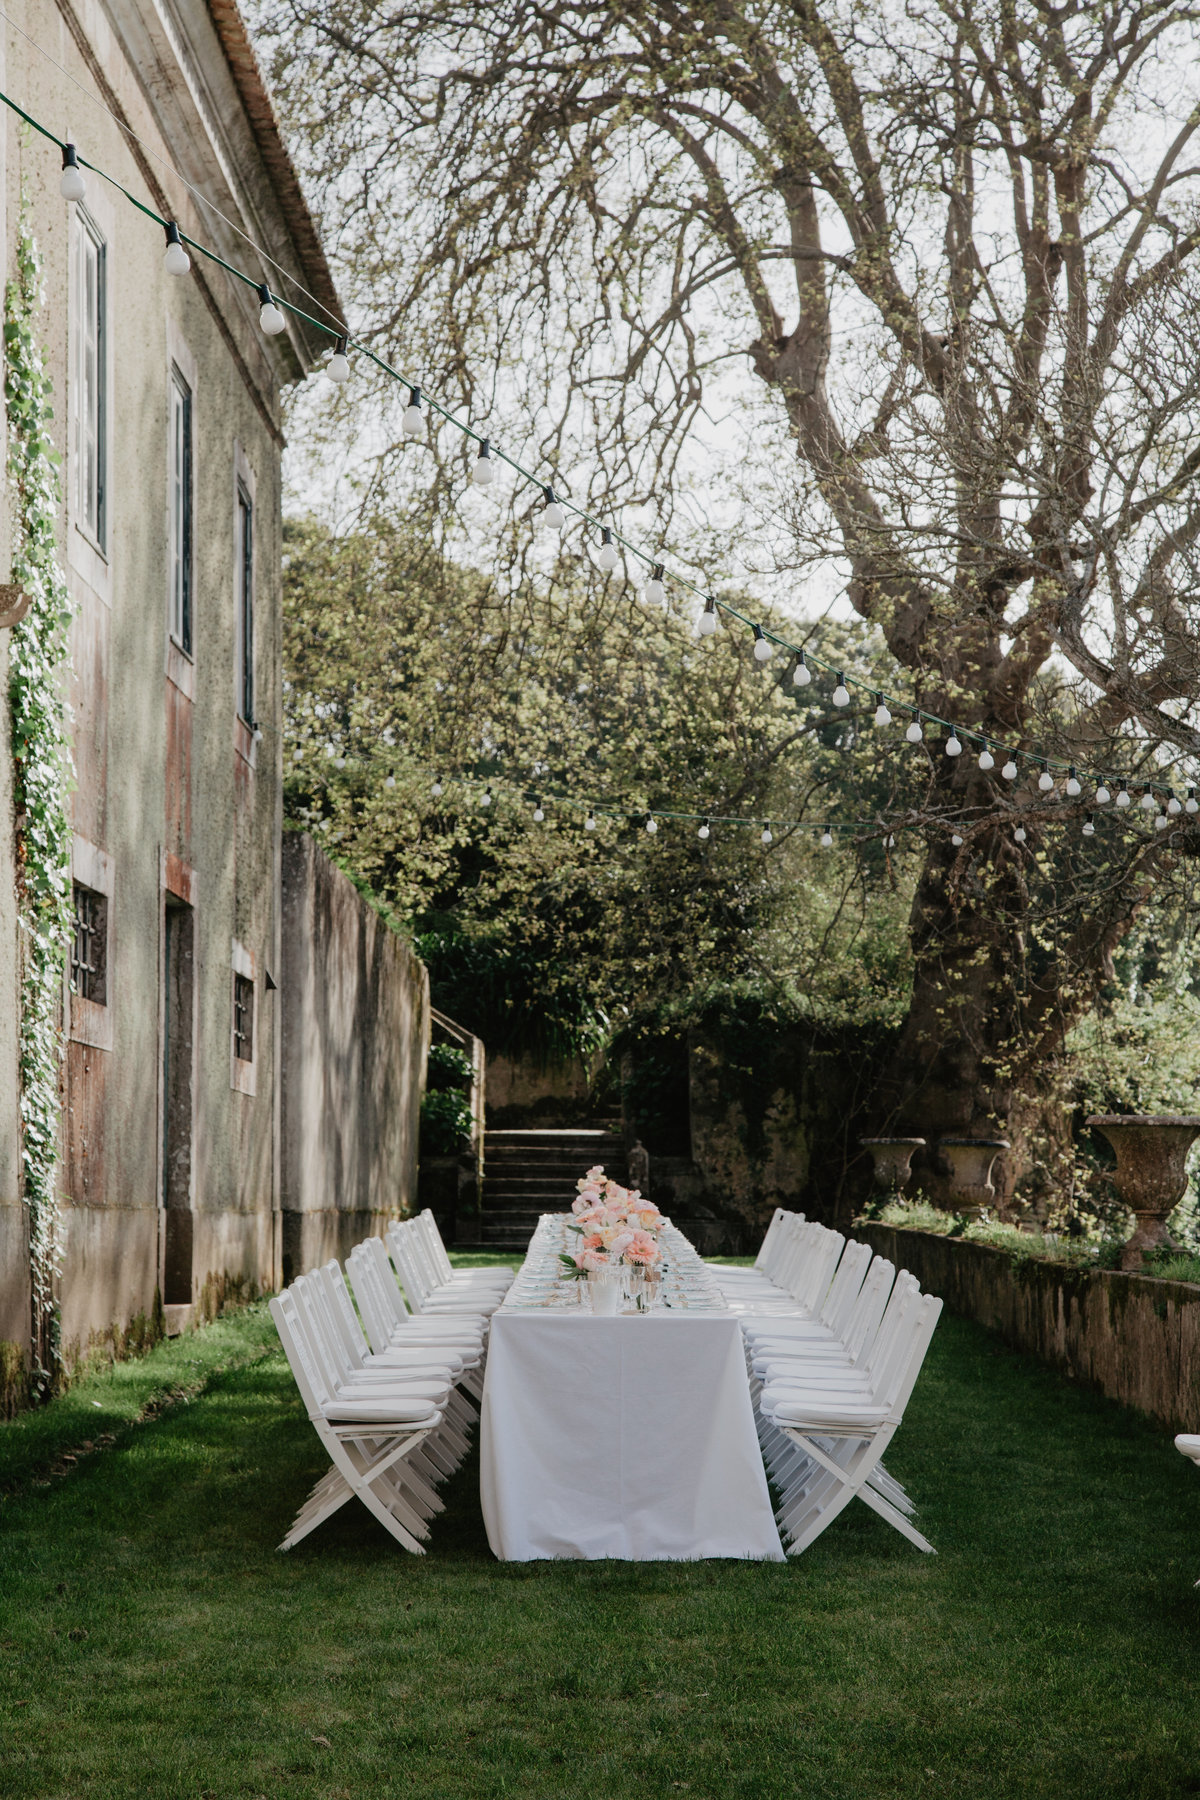 16ValerieVisschedijk - Destinationwedding - Portugal-16